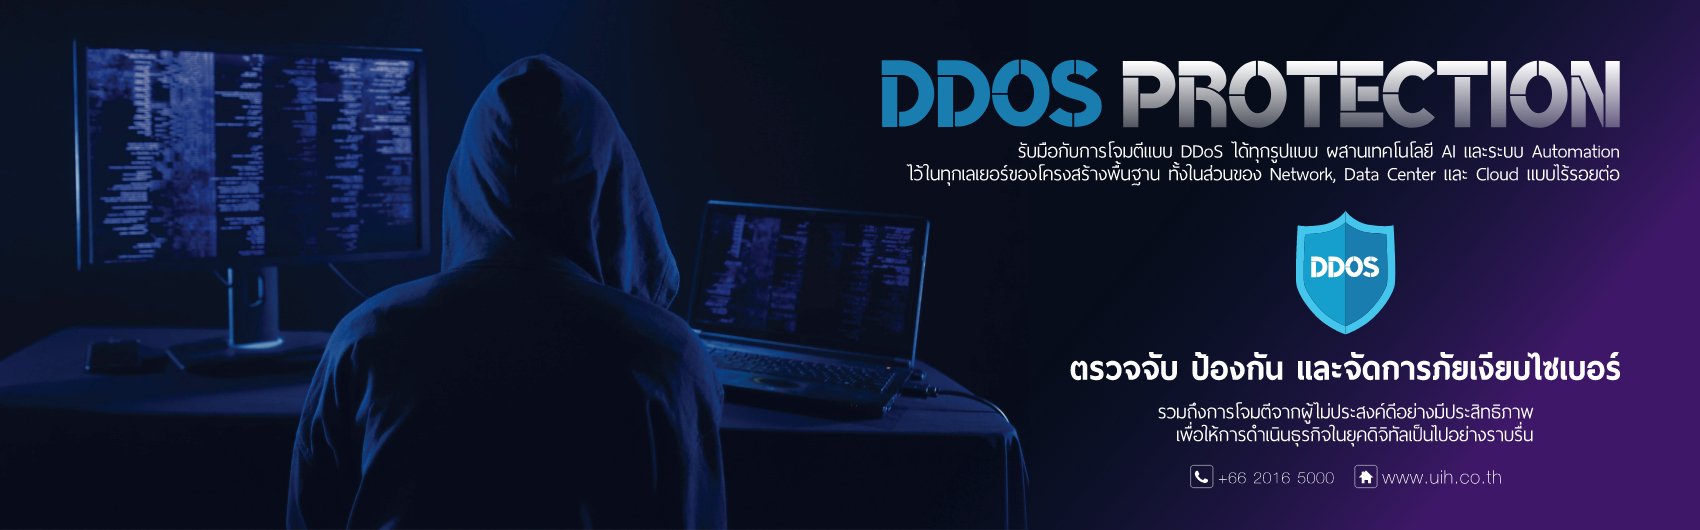 UIH DDOS Protection